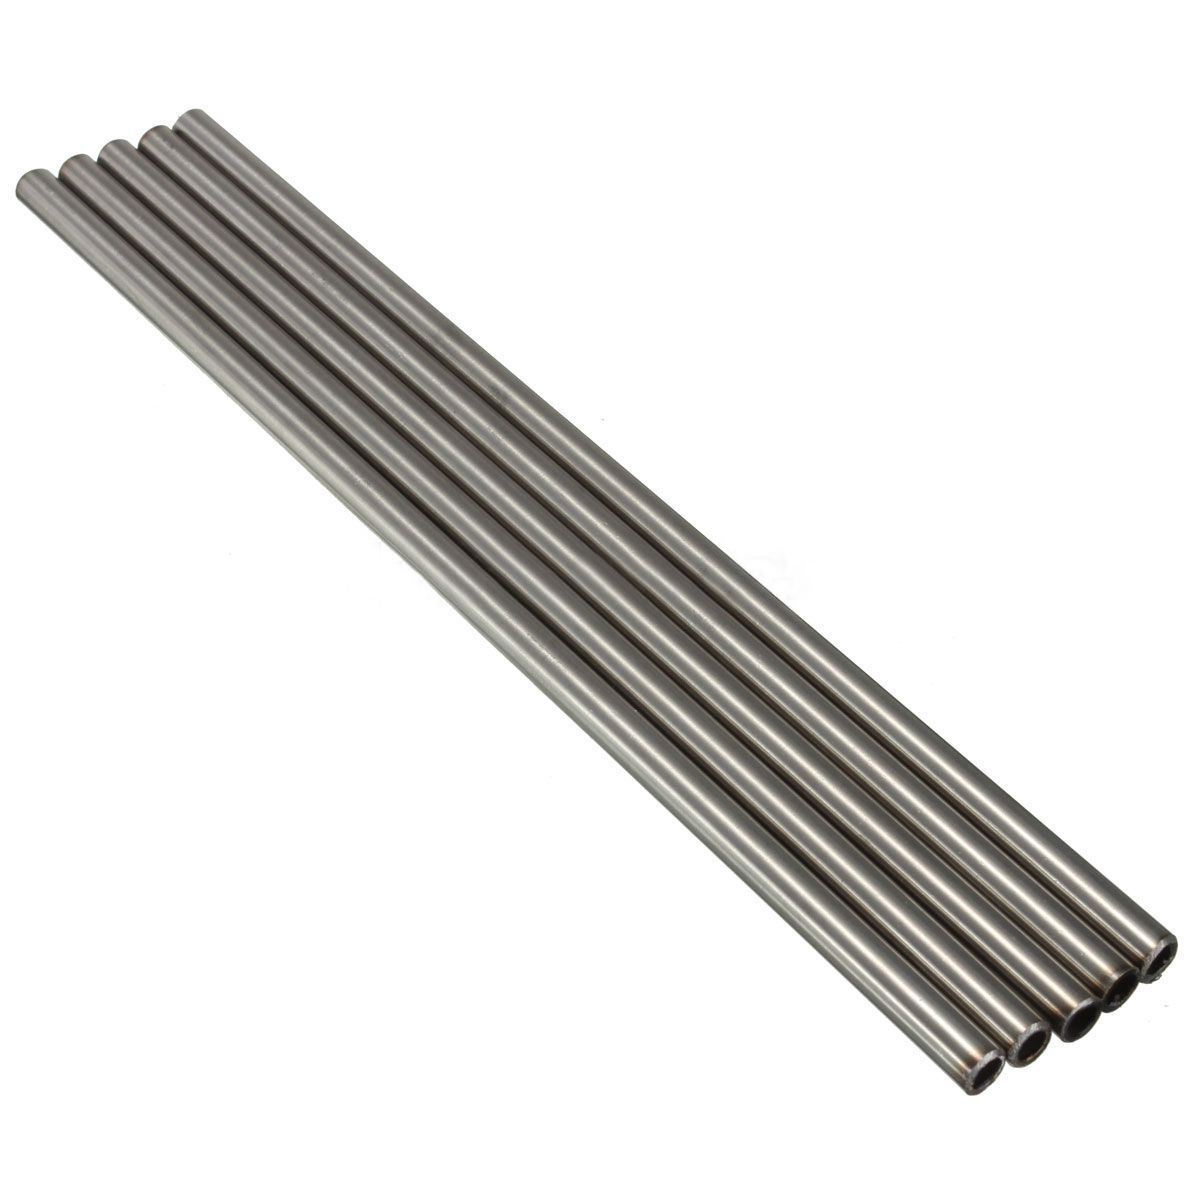 1pc/2pcs Silver 304 Stainless Steel Capillary Tube Corrosion Resistant Rod Pipe Tool OD 8mm 6mm ID Length 250mm Mayitr 5pcs 304 stainless seamless steel capillary tube od 5mm x 3mm id length 250mm polished surface rust protection popular